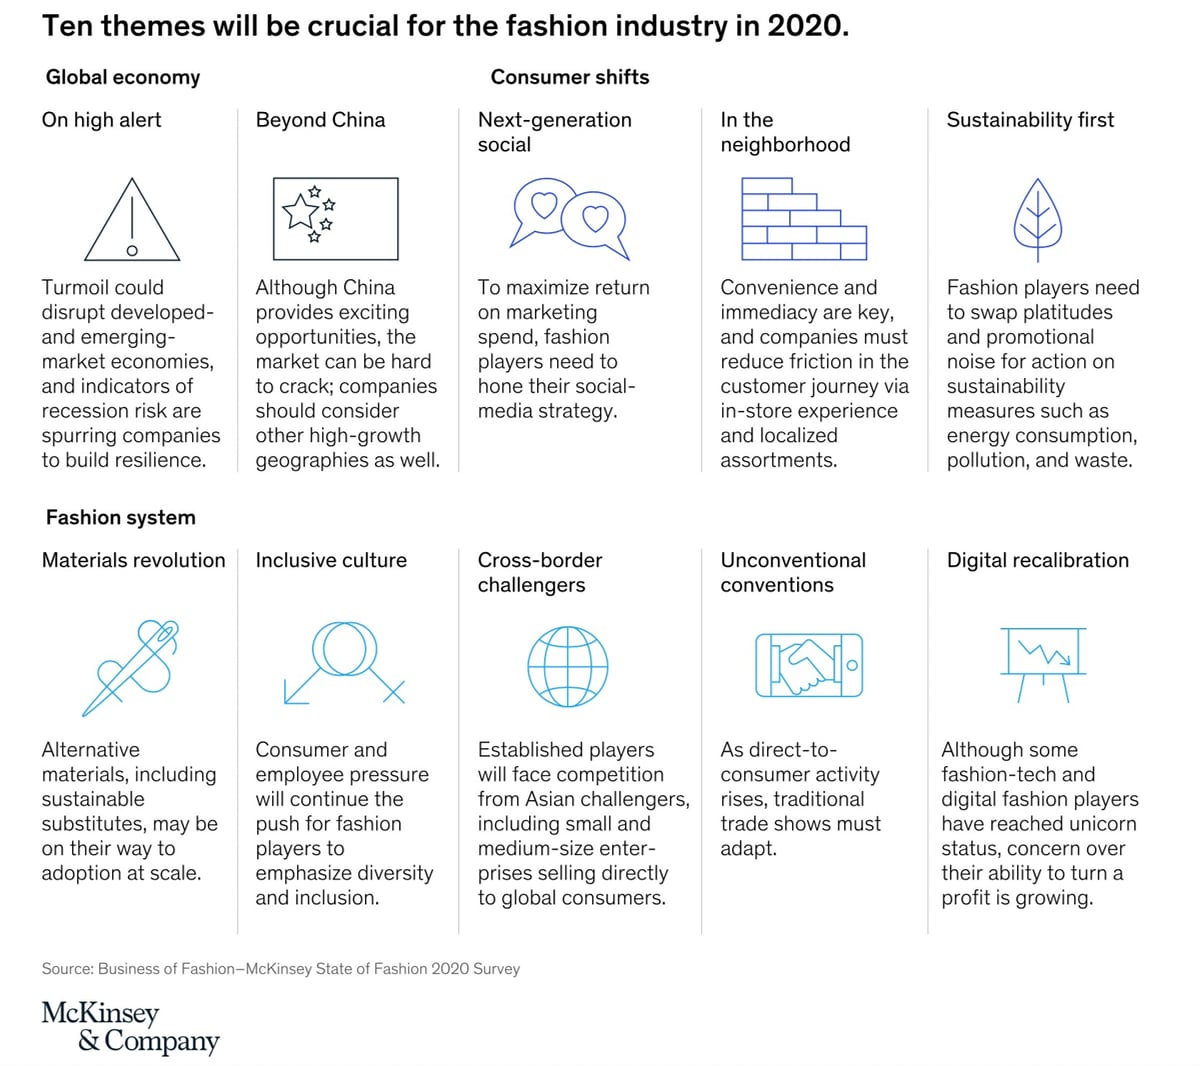 McKinsey Fashion Trends 2020